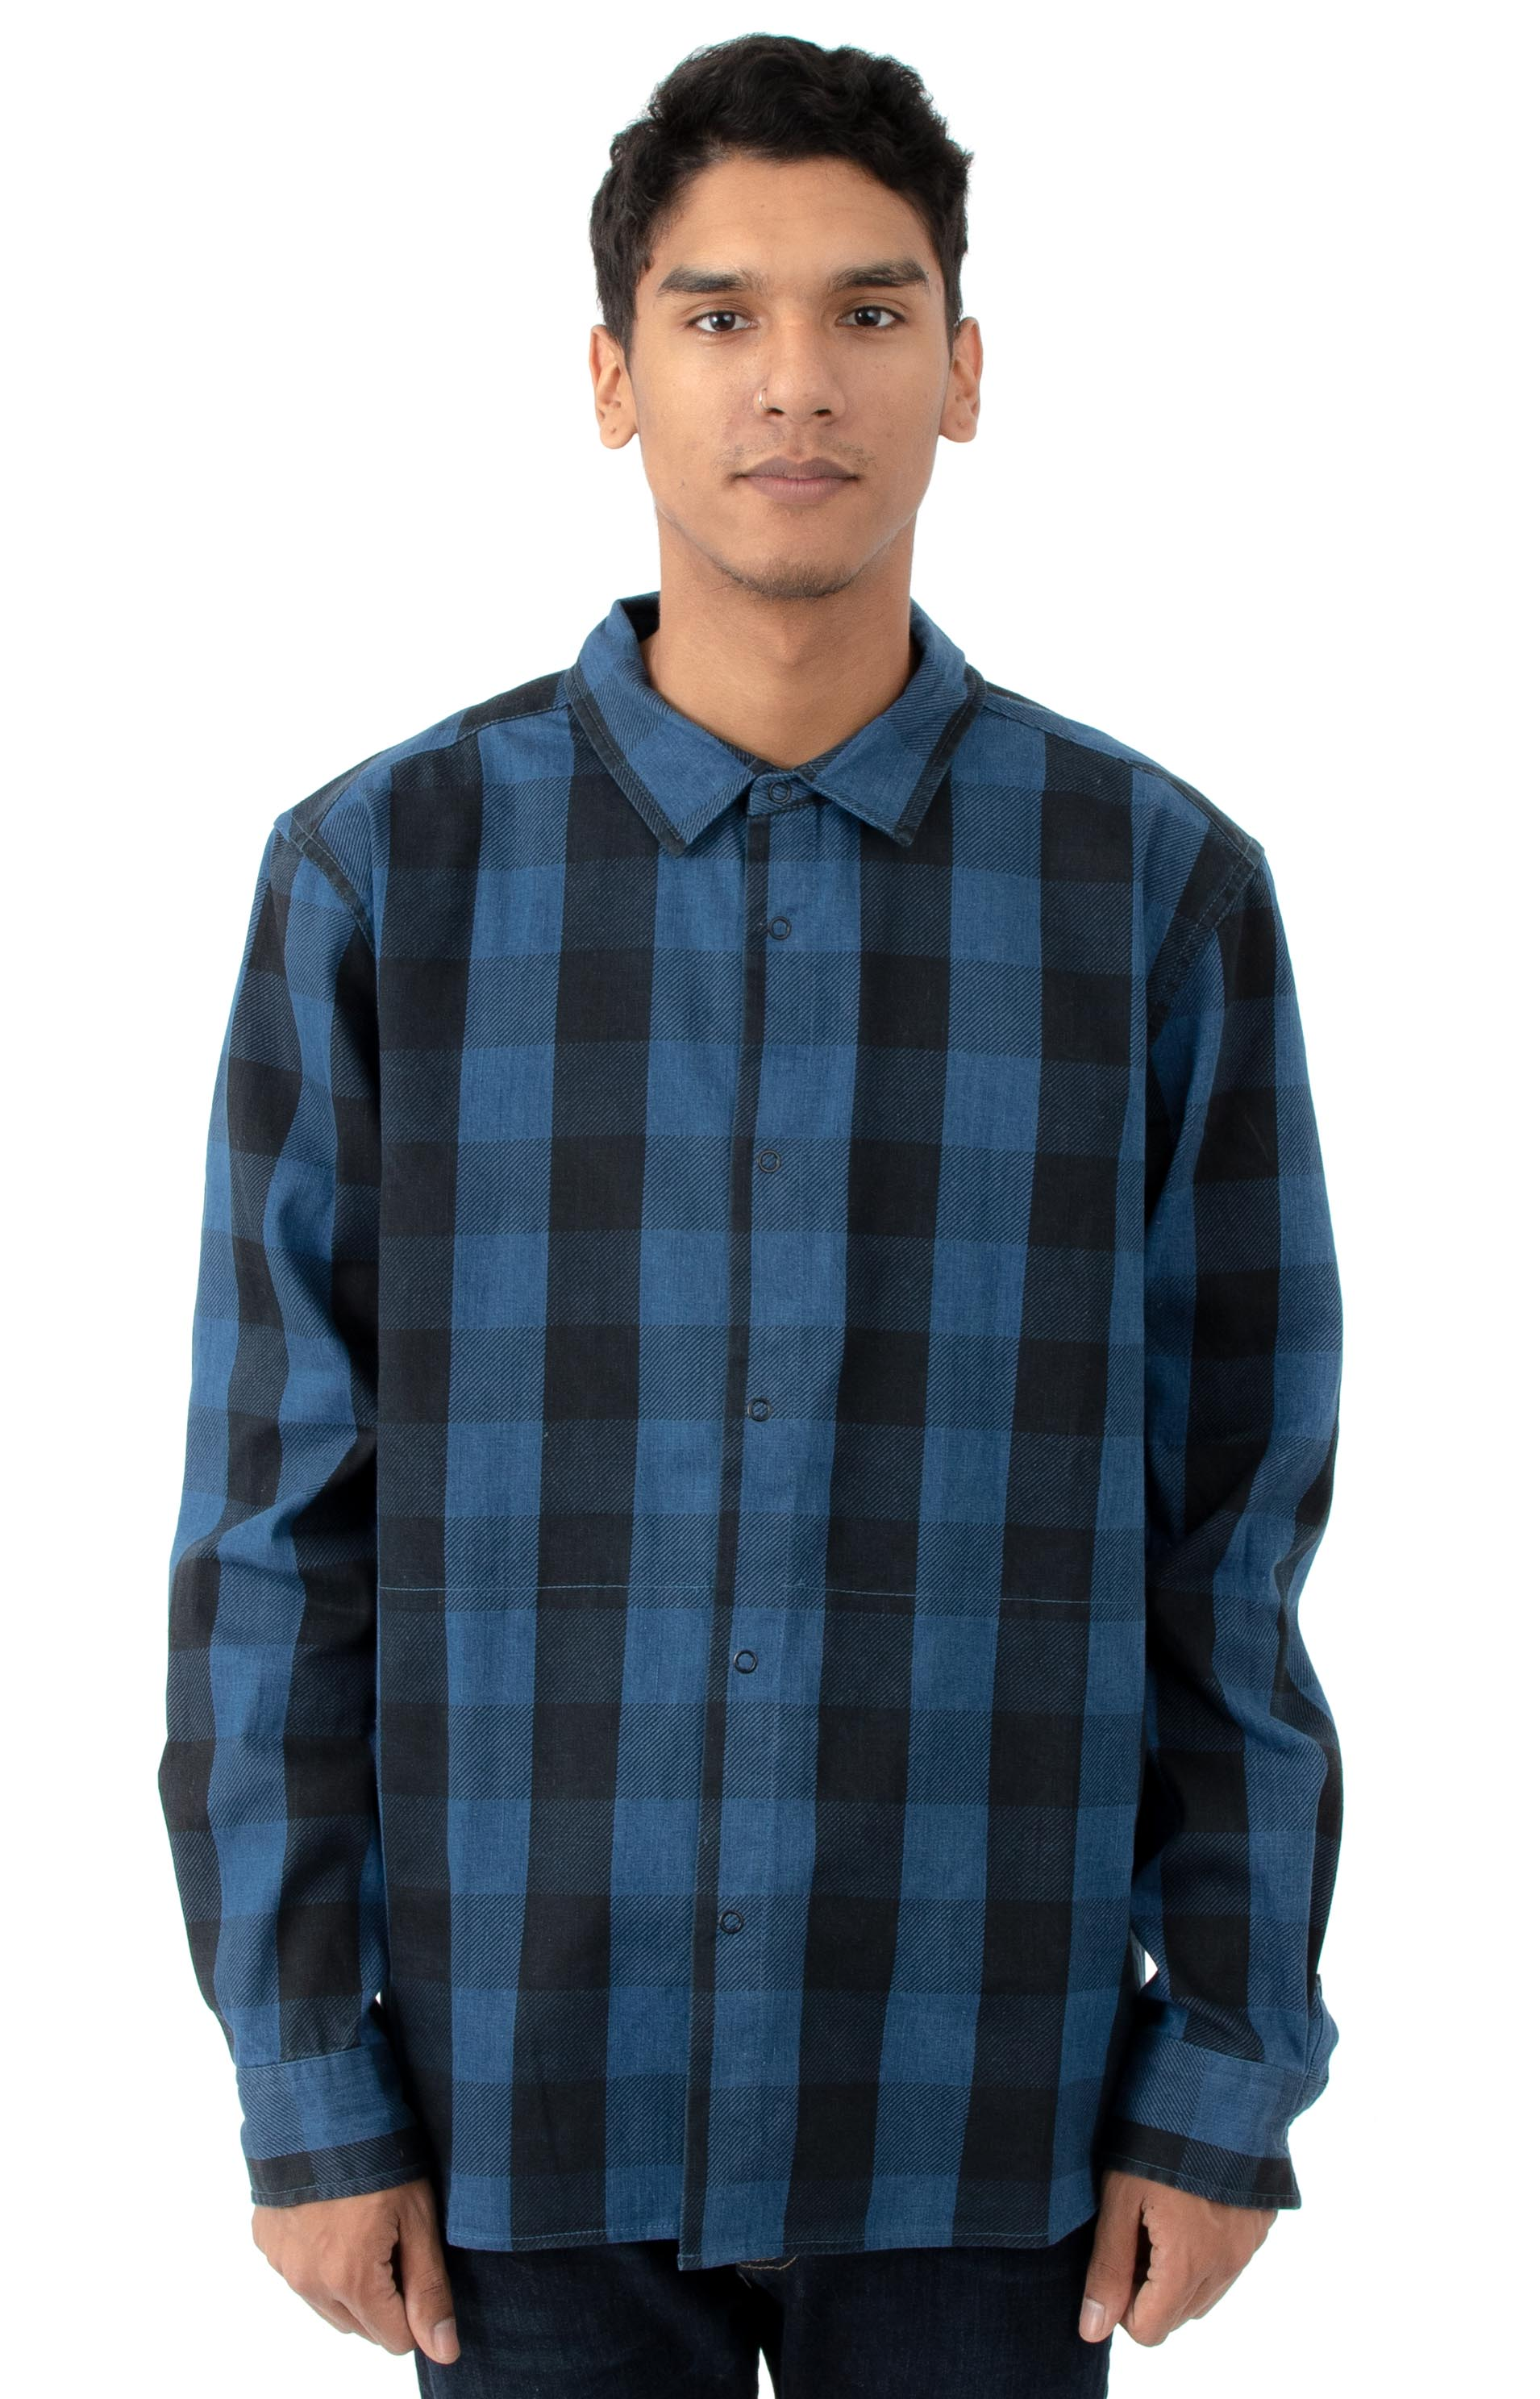 Primitive 77295 Indigo Check L/S Button-Up Shirt - Indigo